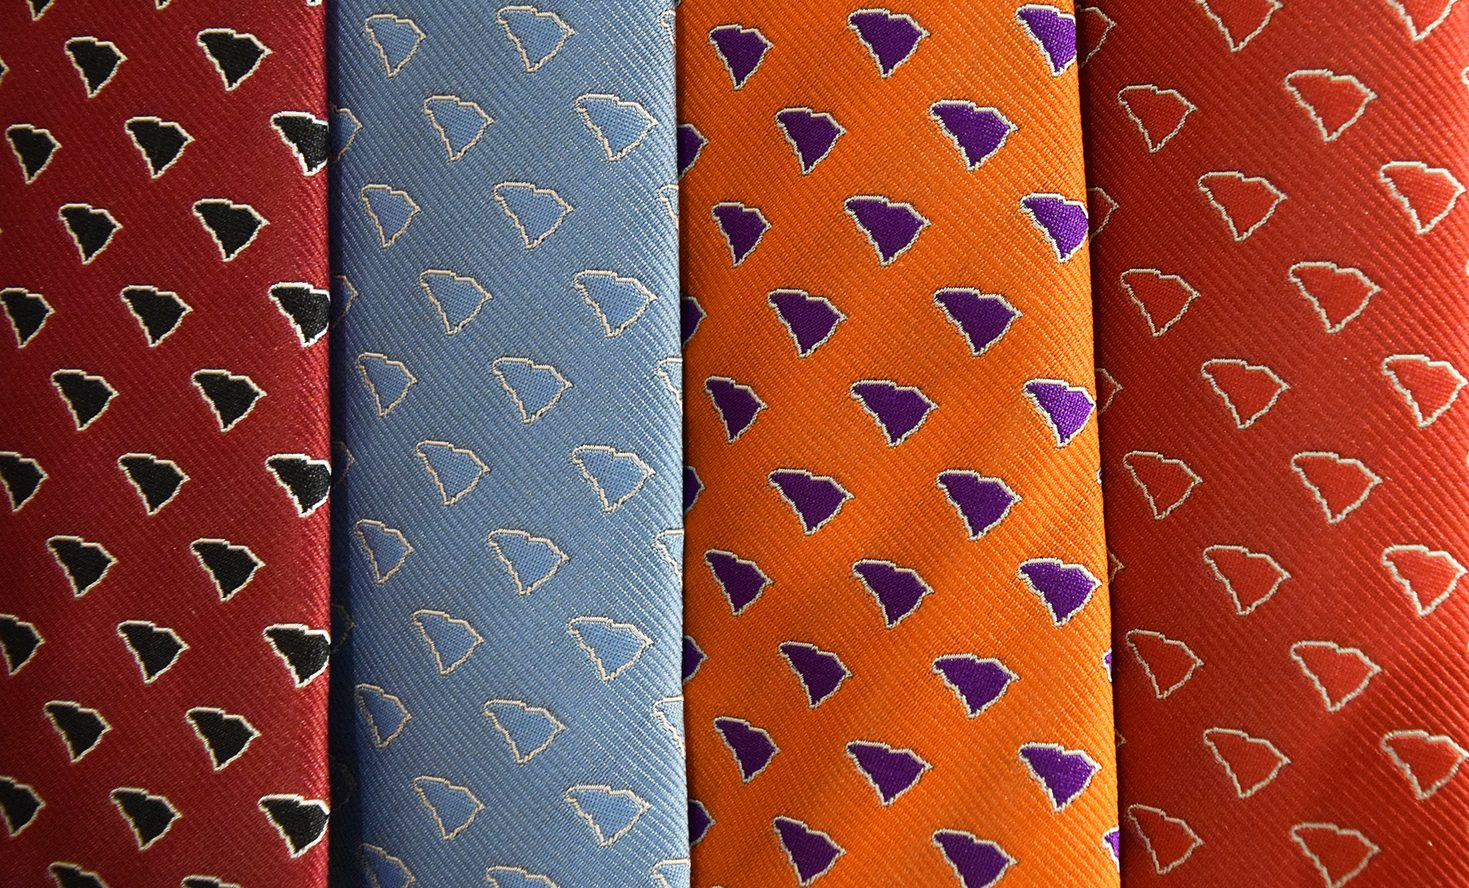 South Carolina Ties, Menswear, neckties, columbia, gifts